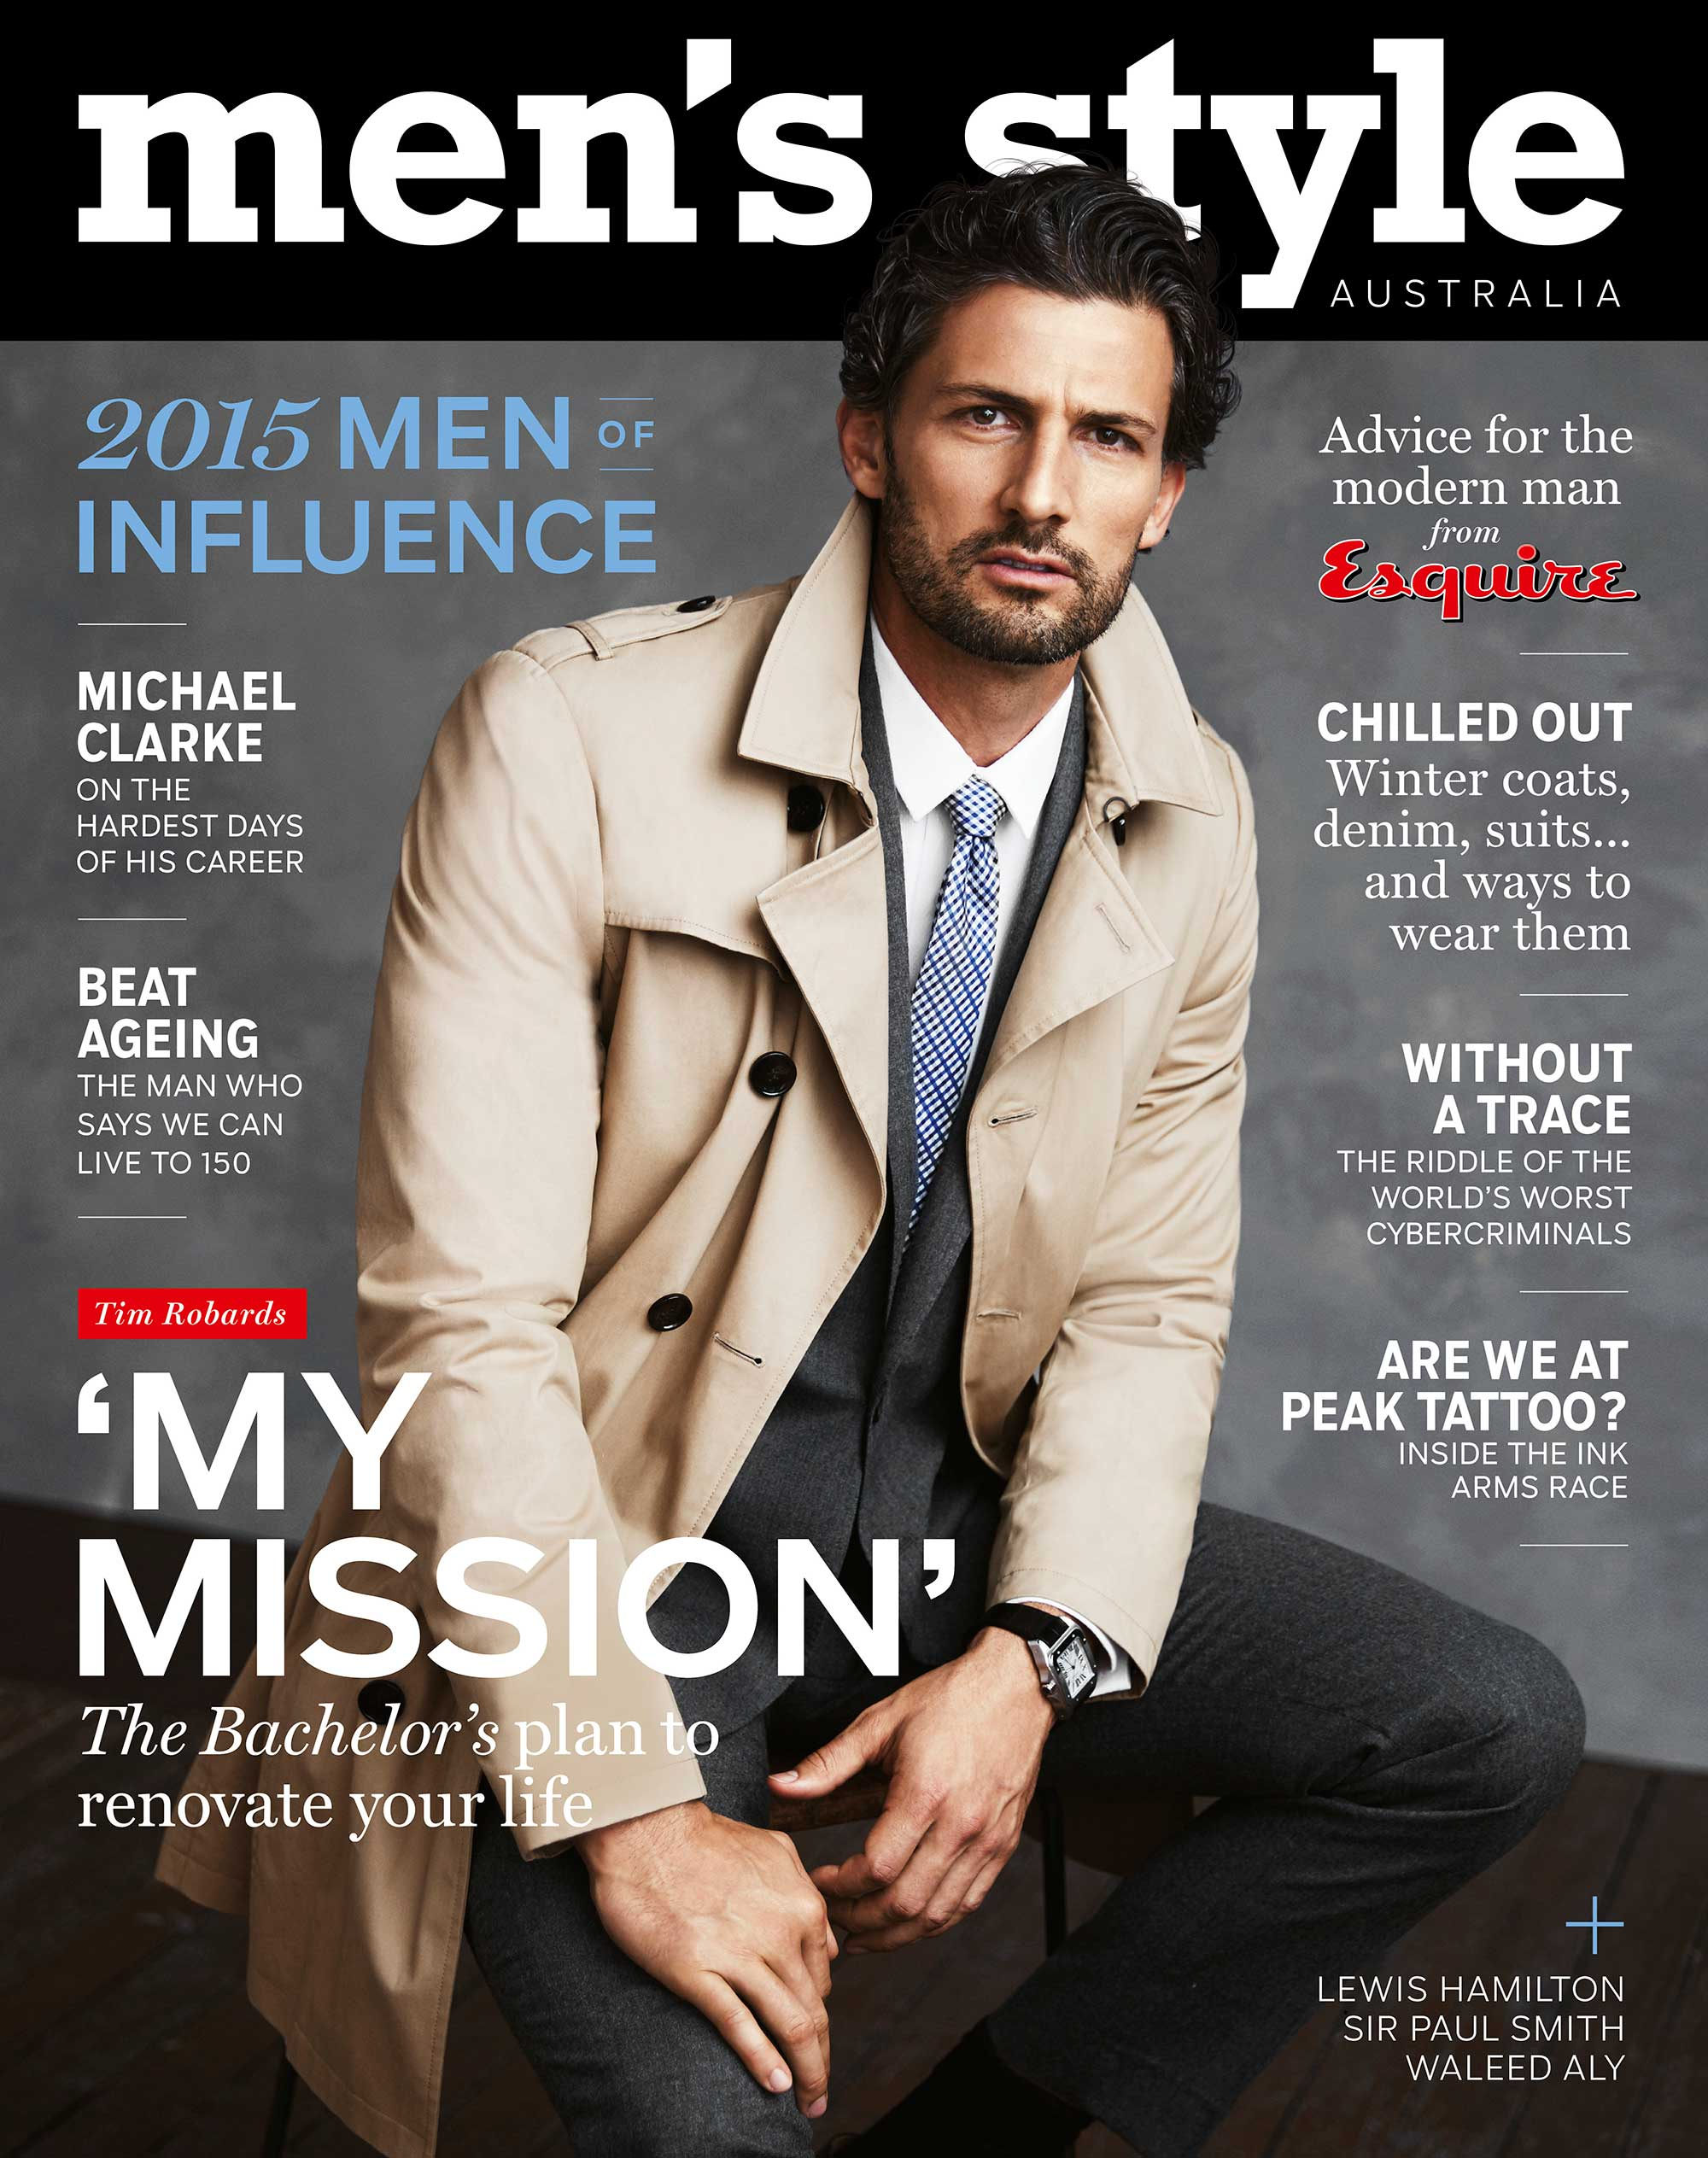 Men's Style Heads In New Direction By Sticking Fella On ...